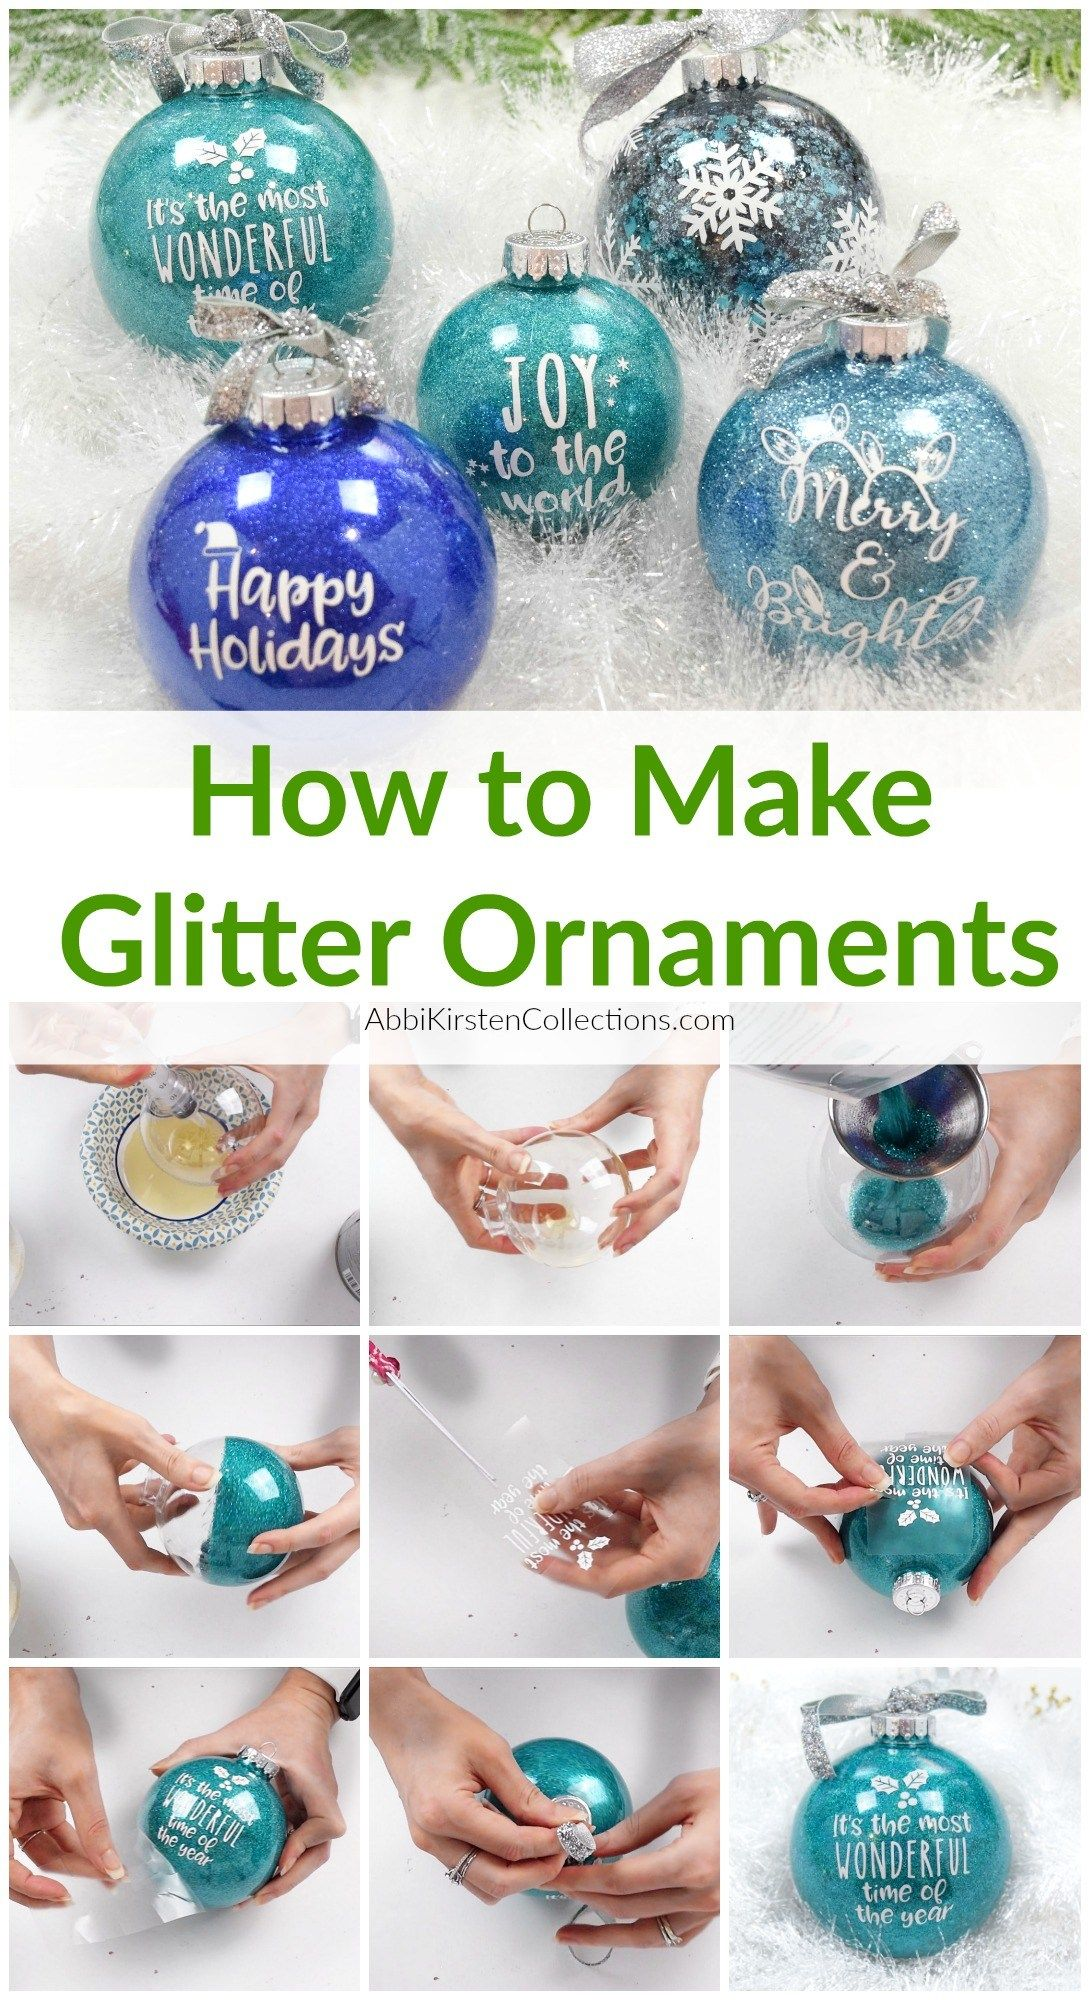 Diy Glitter Ornaments How To Make Your Own Custom Ornaments In 2020 Glitter Ornaments Diy Homemade Glitter Glitter Ornaments